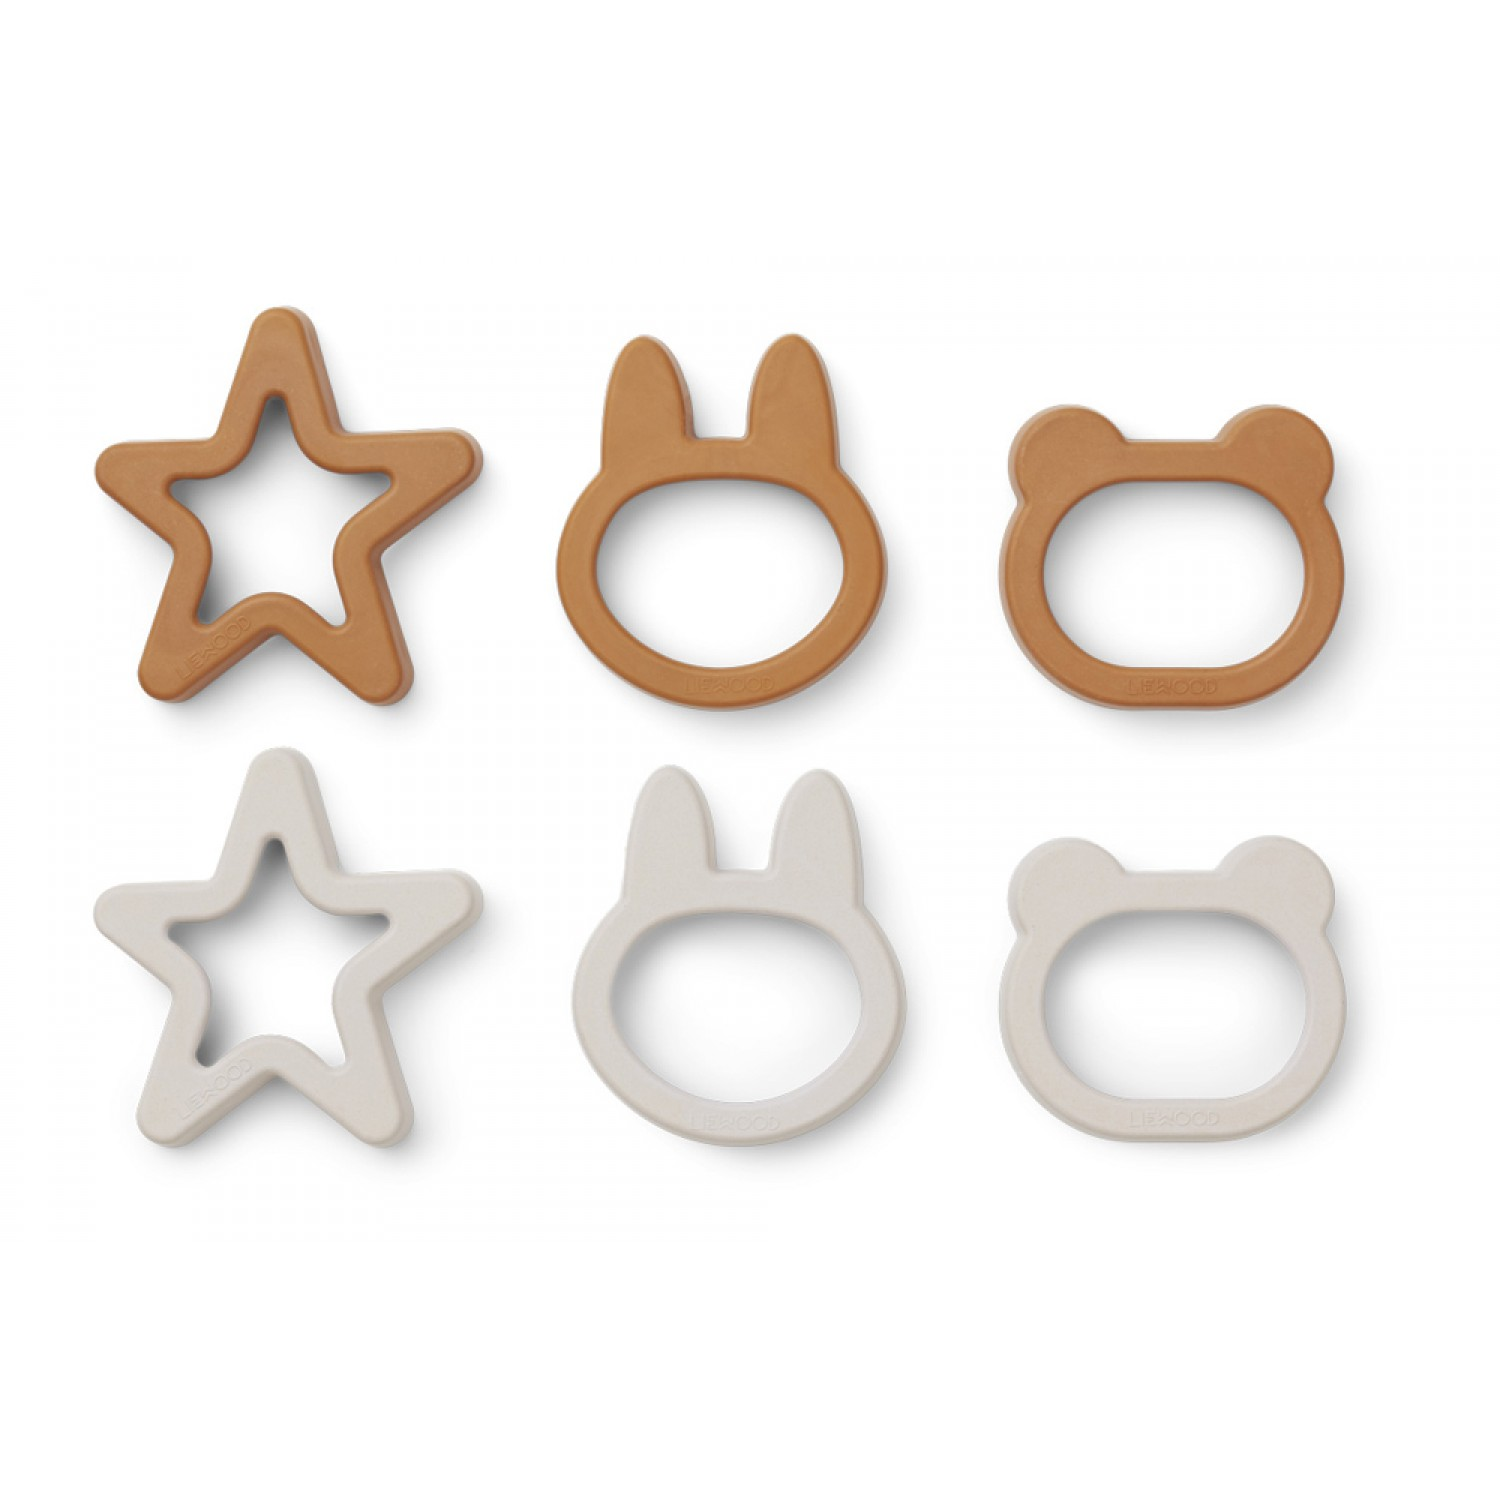 Andy Cookie Cutter - 6 pack | Mustard